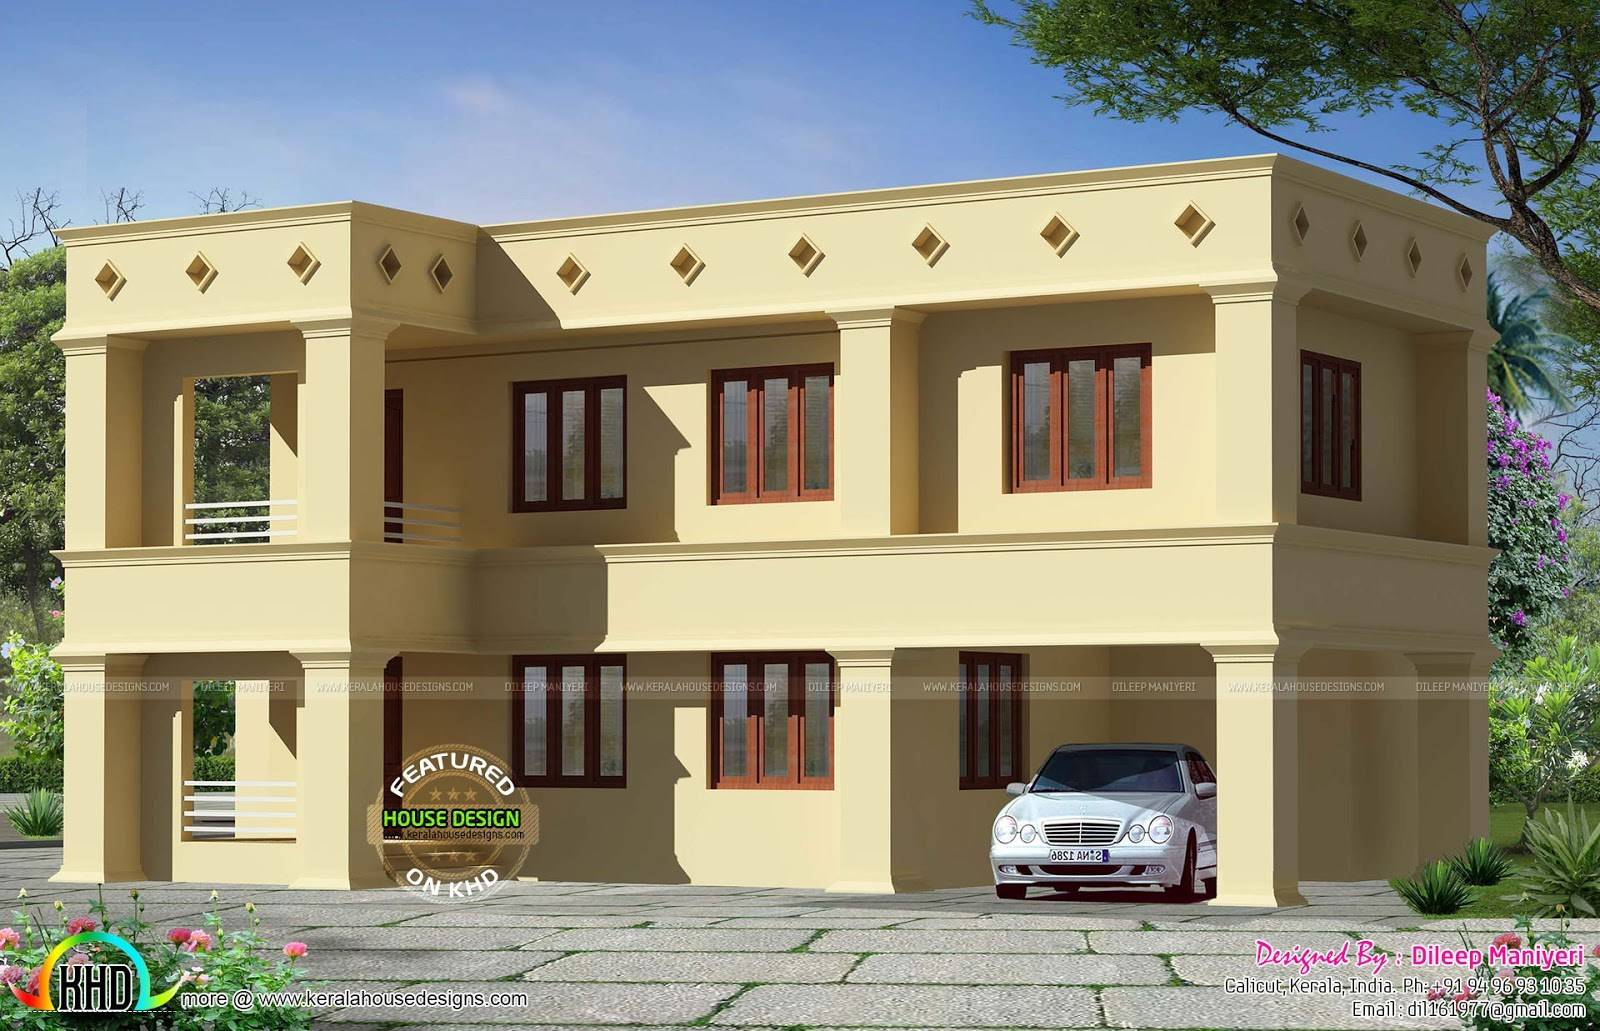 Design Style Arabic Flat Roof House Woody Nody House Plans 122060